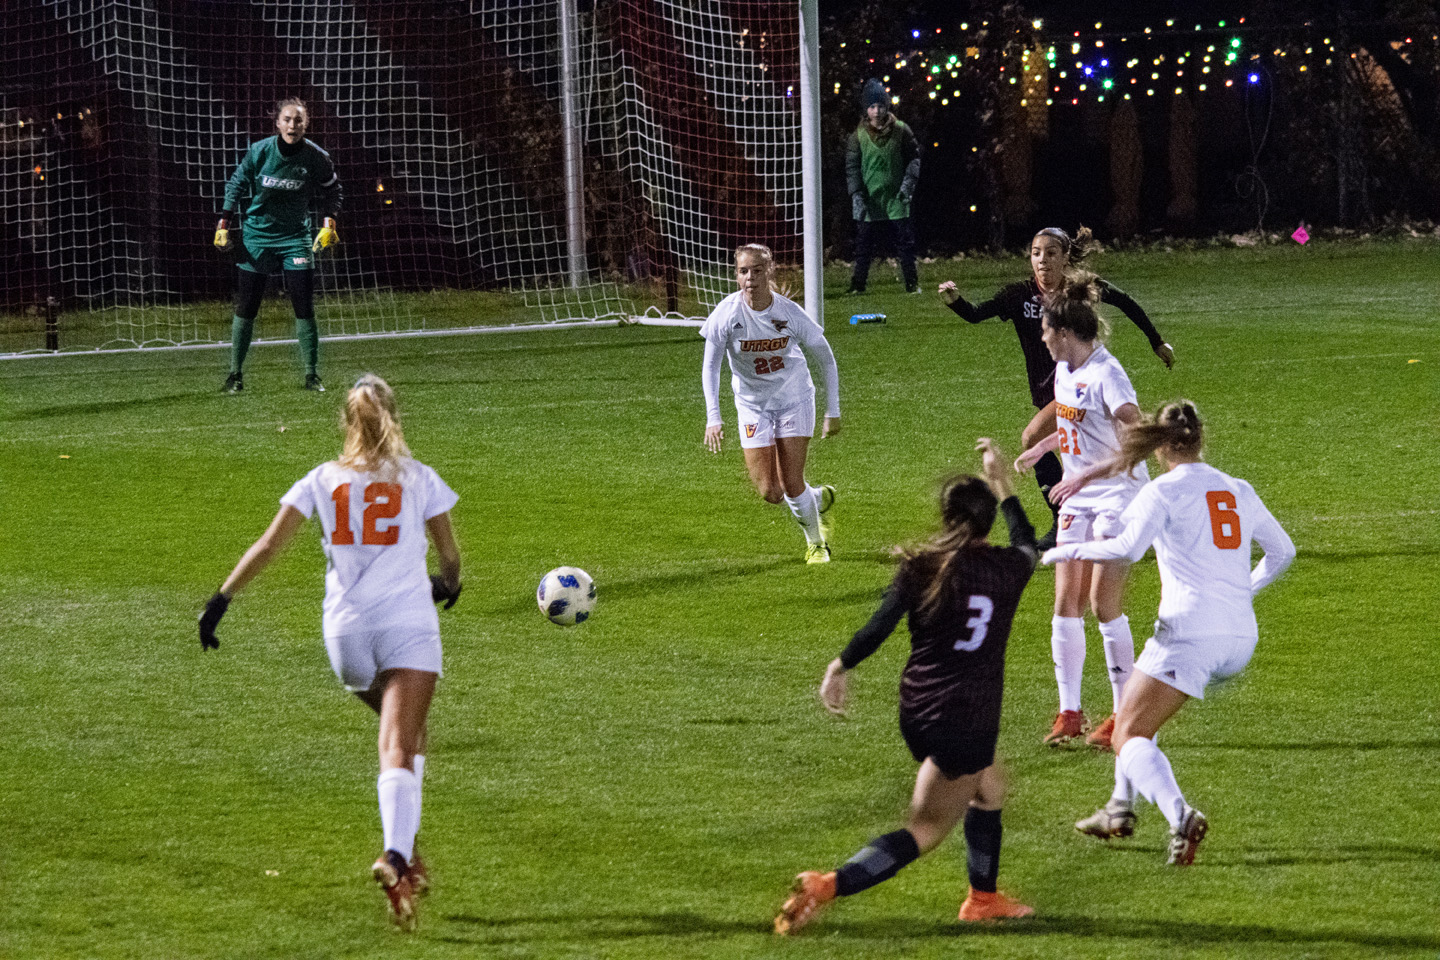 Gina Leete, #3, takes a shot at the goal under tight defense.